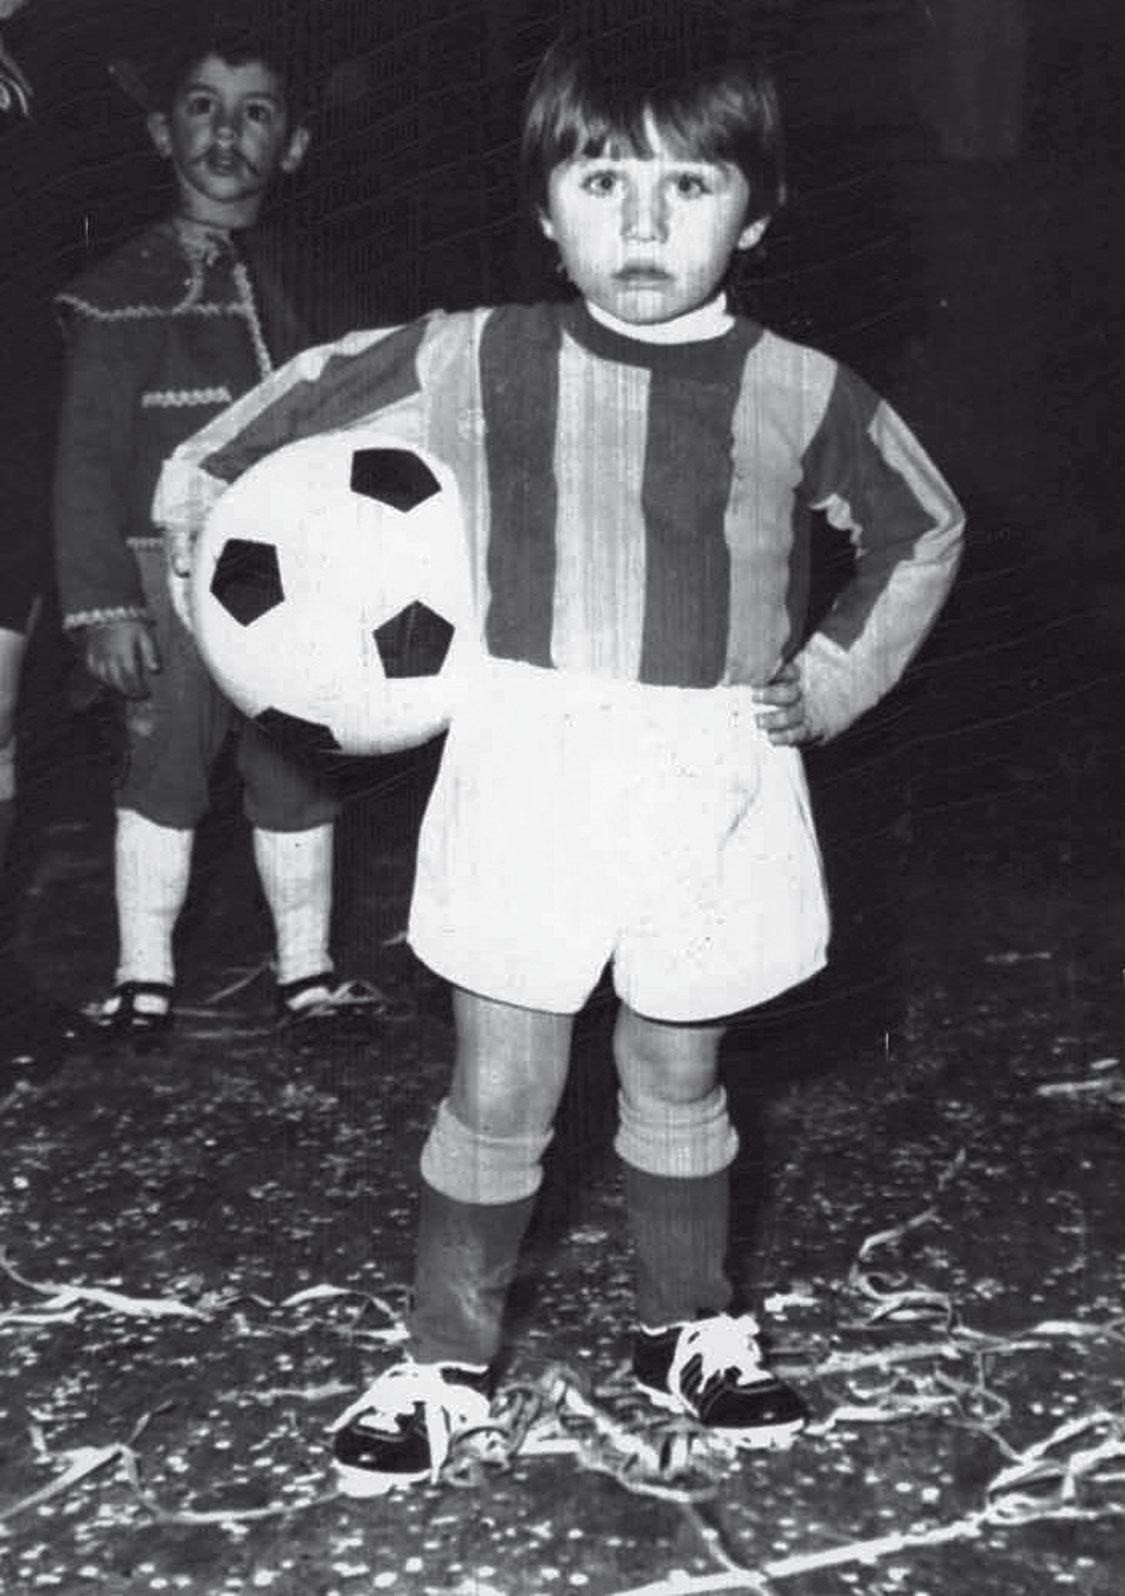 Antonio Conte childhood photo one at Antonioconteofficial.it